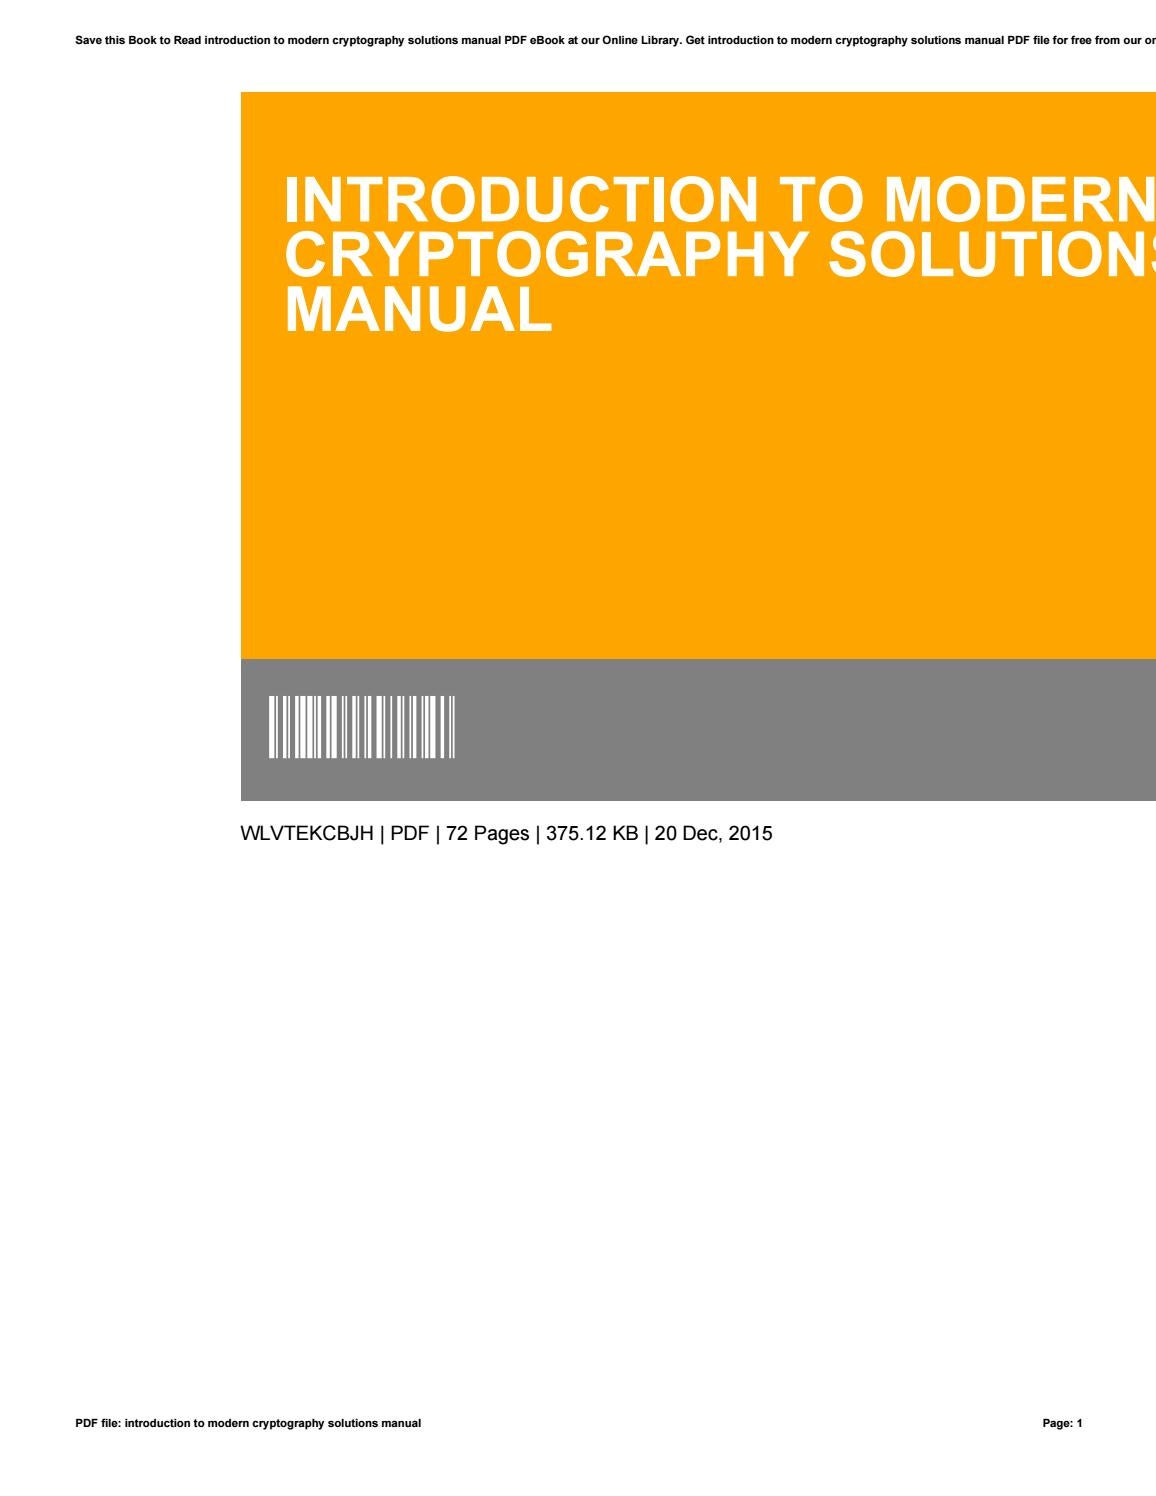 Introduction To Modern Cryptography Solutions Manual By Carlos Barrett